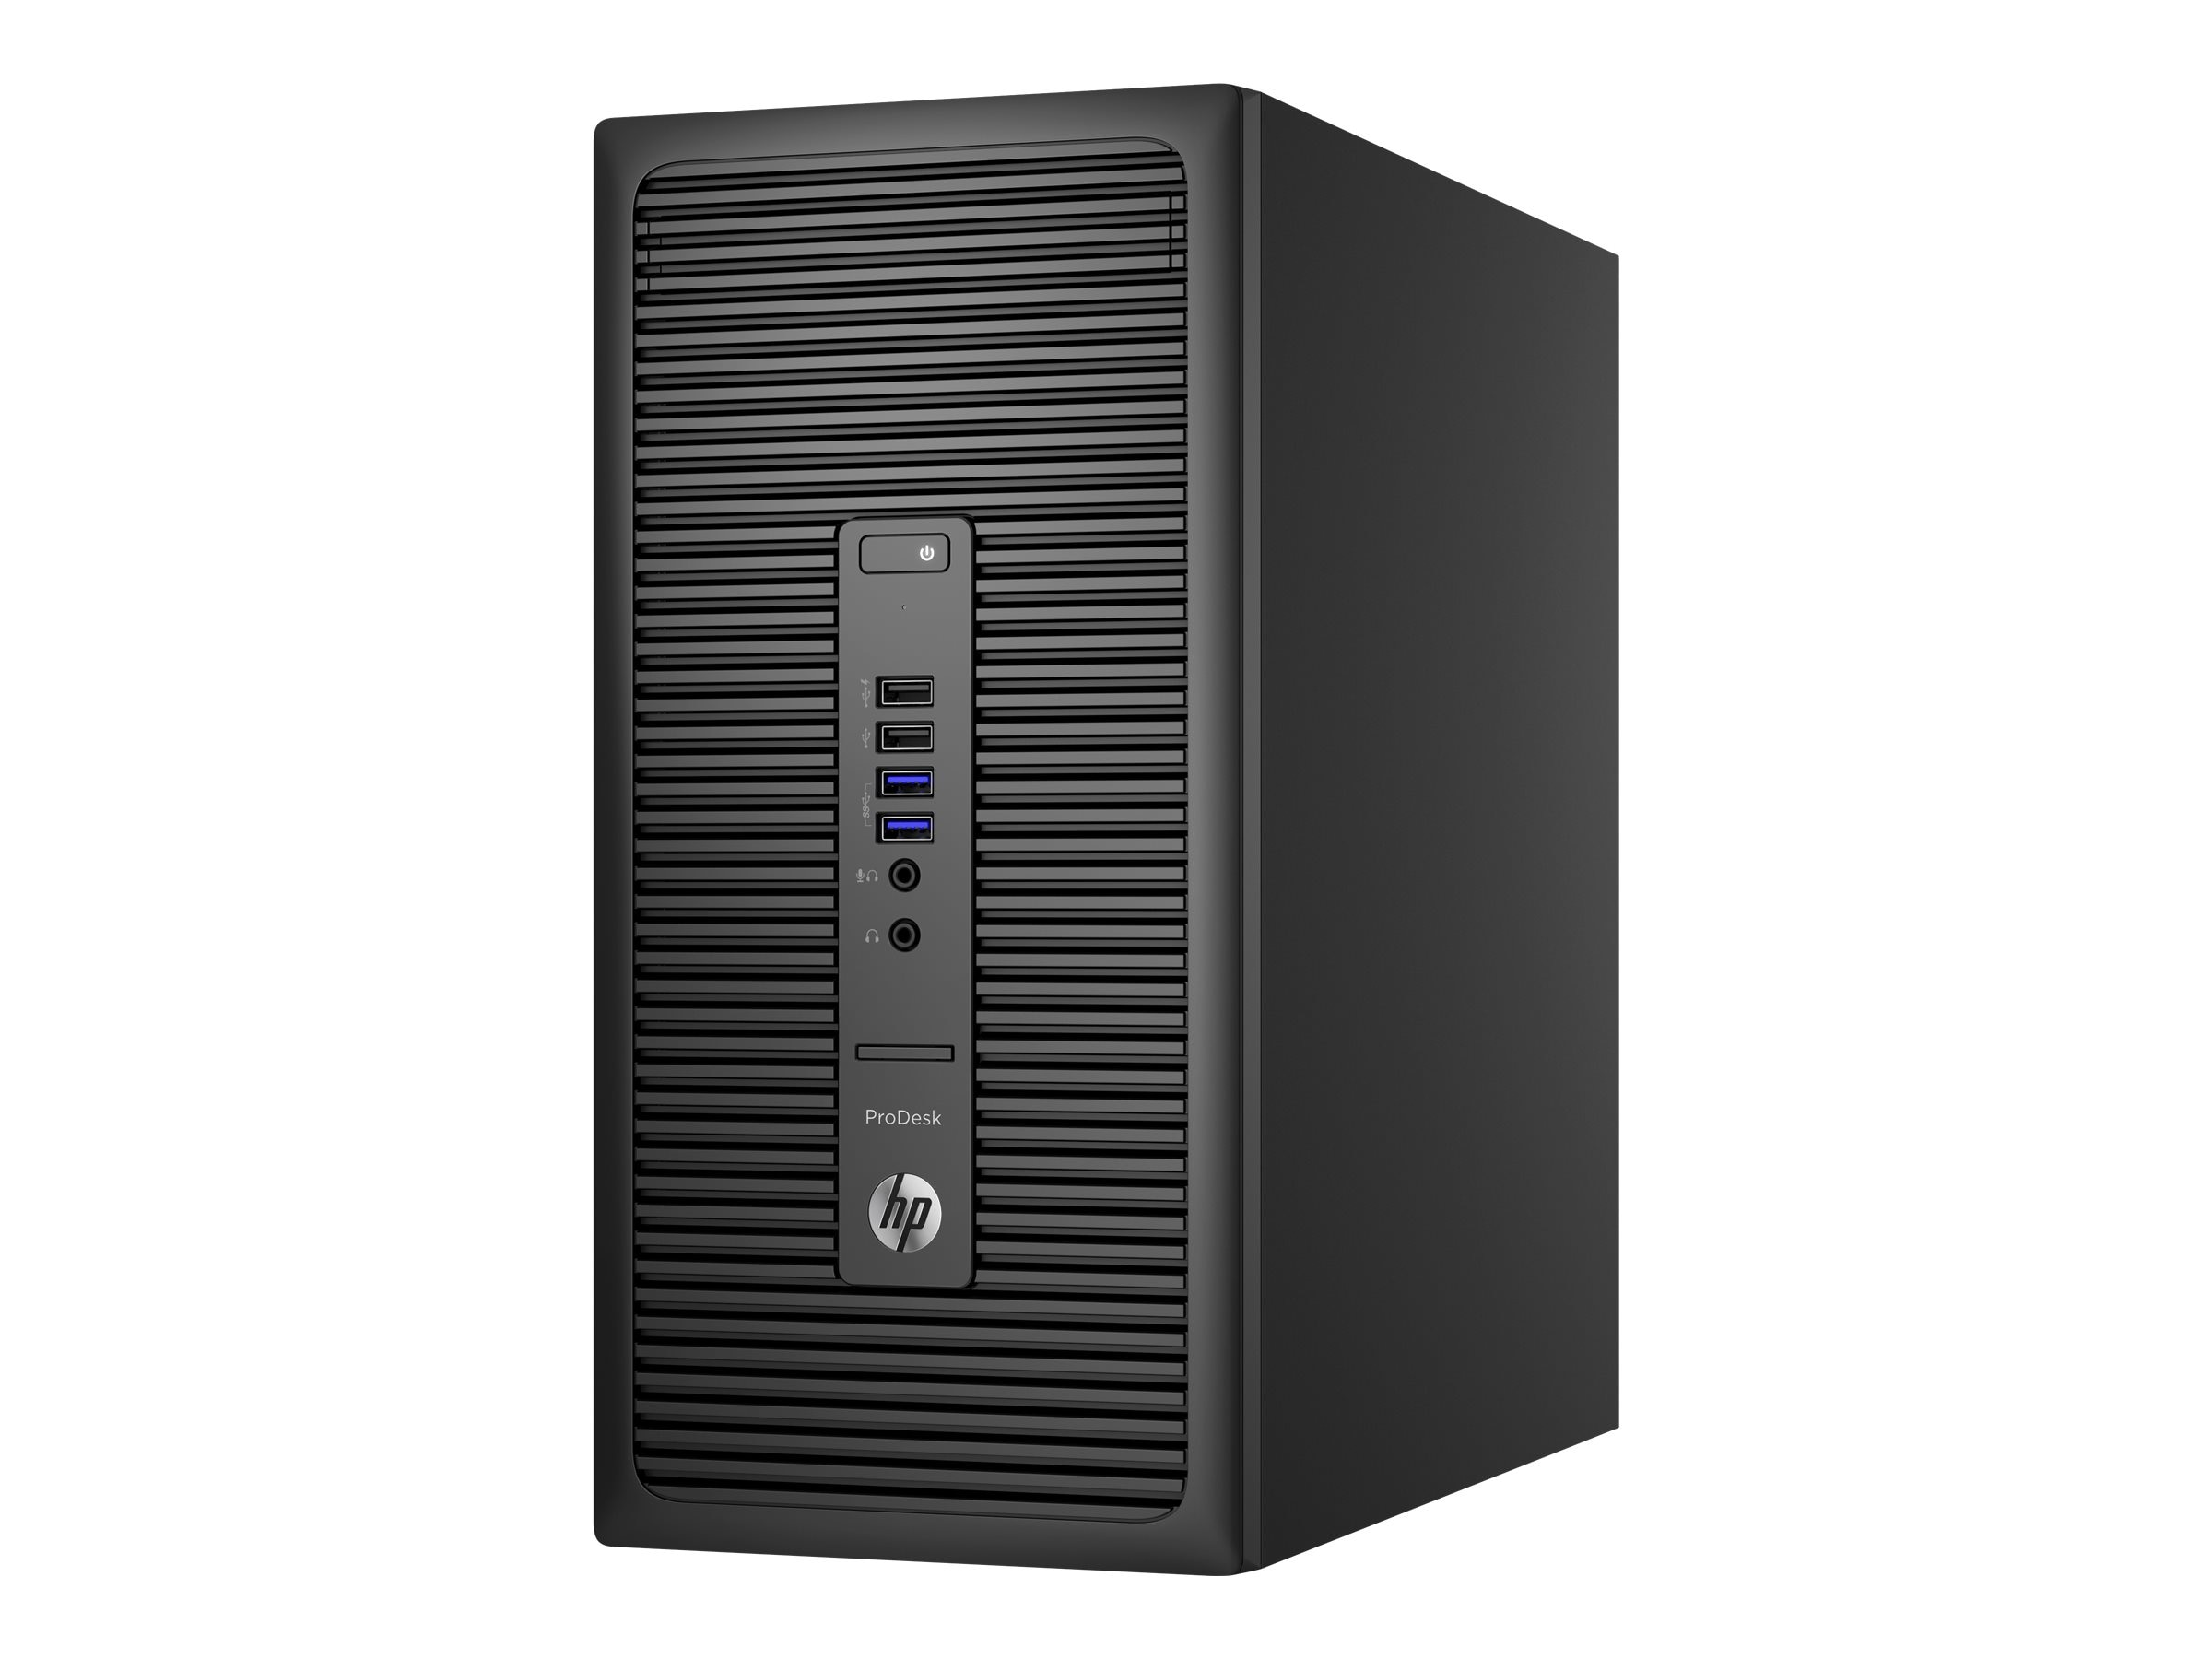 HP ProDesk 600 G2 MT G4400T 4GB 500GB